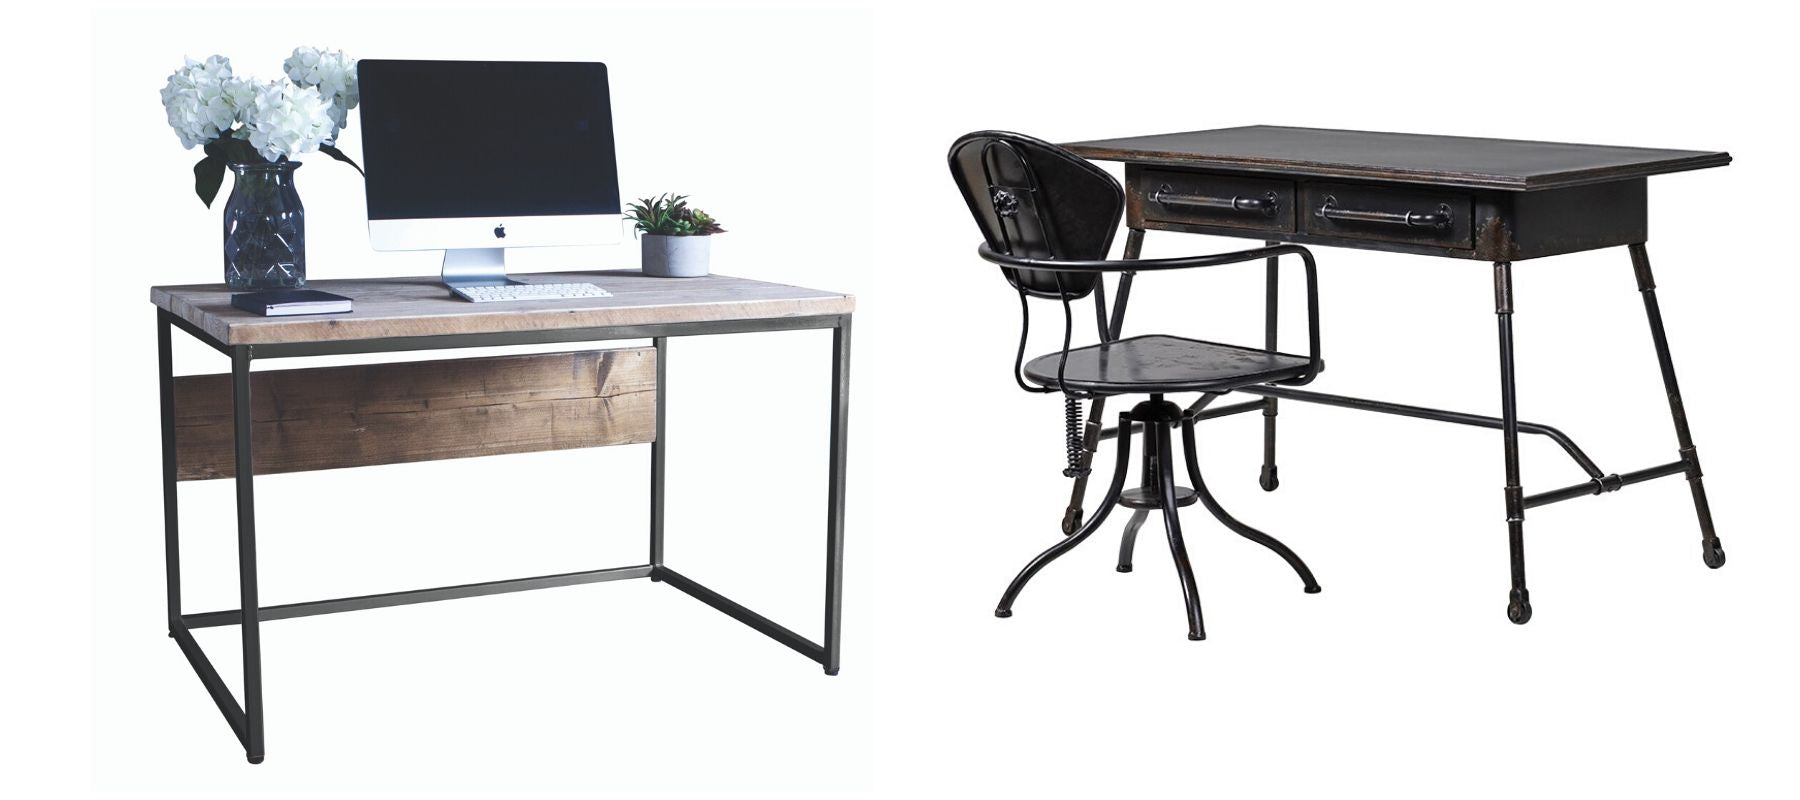 Two industrial style desks, including black metal desk